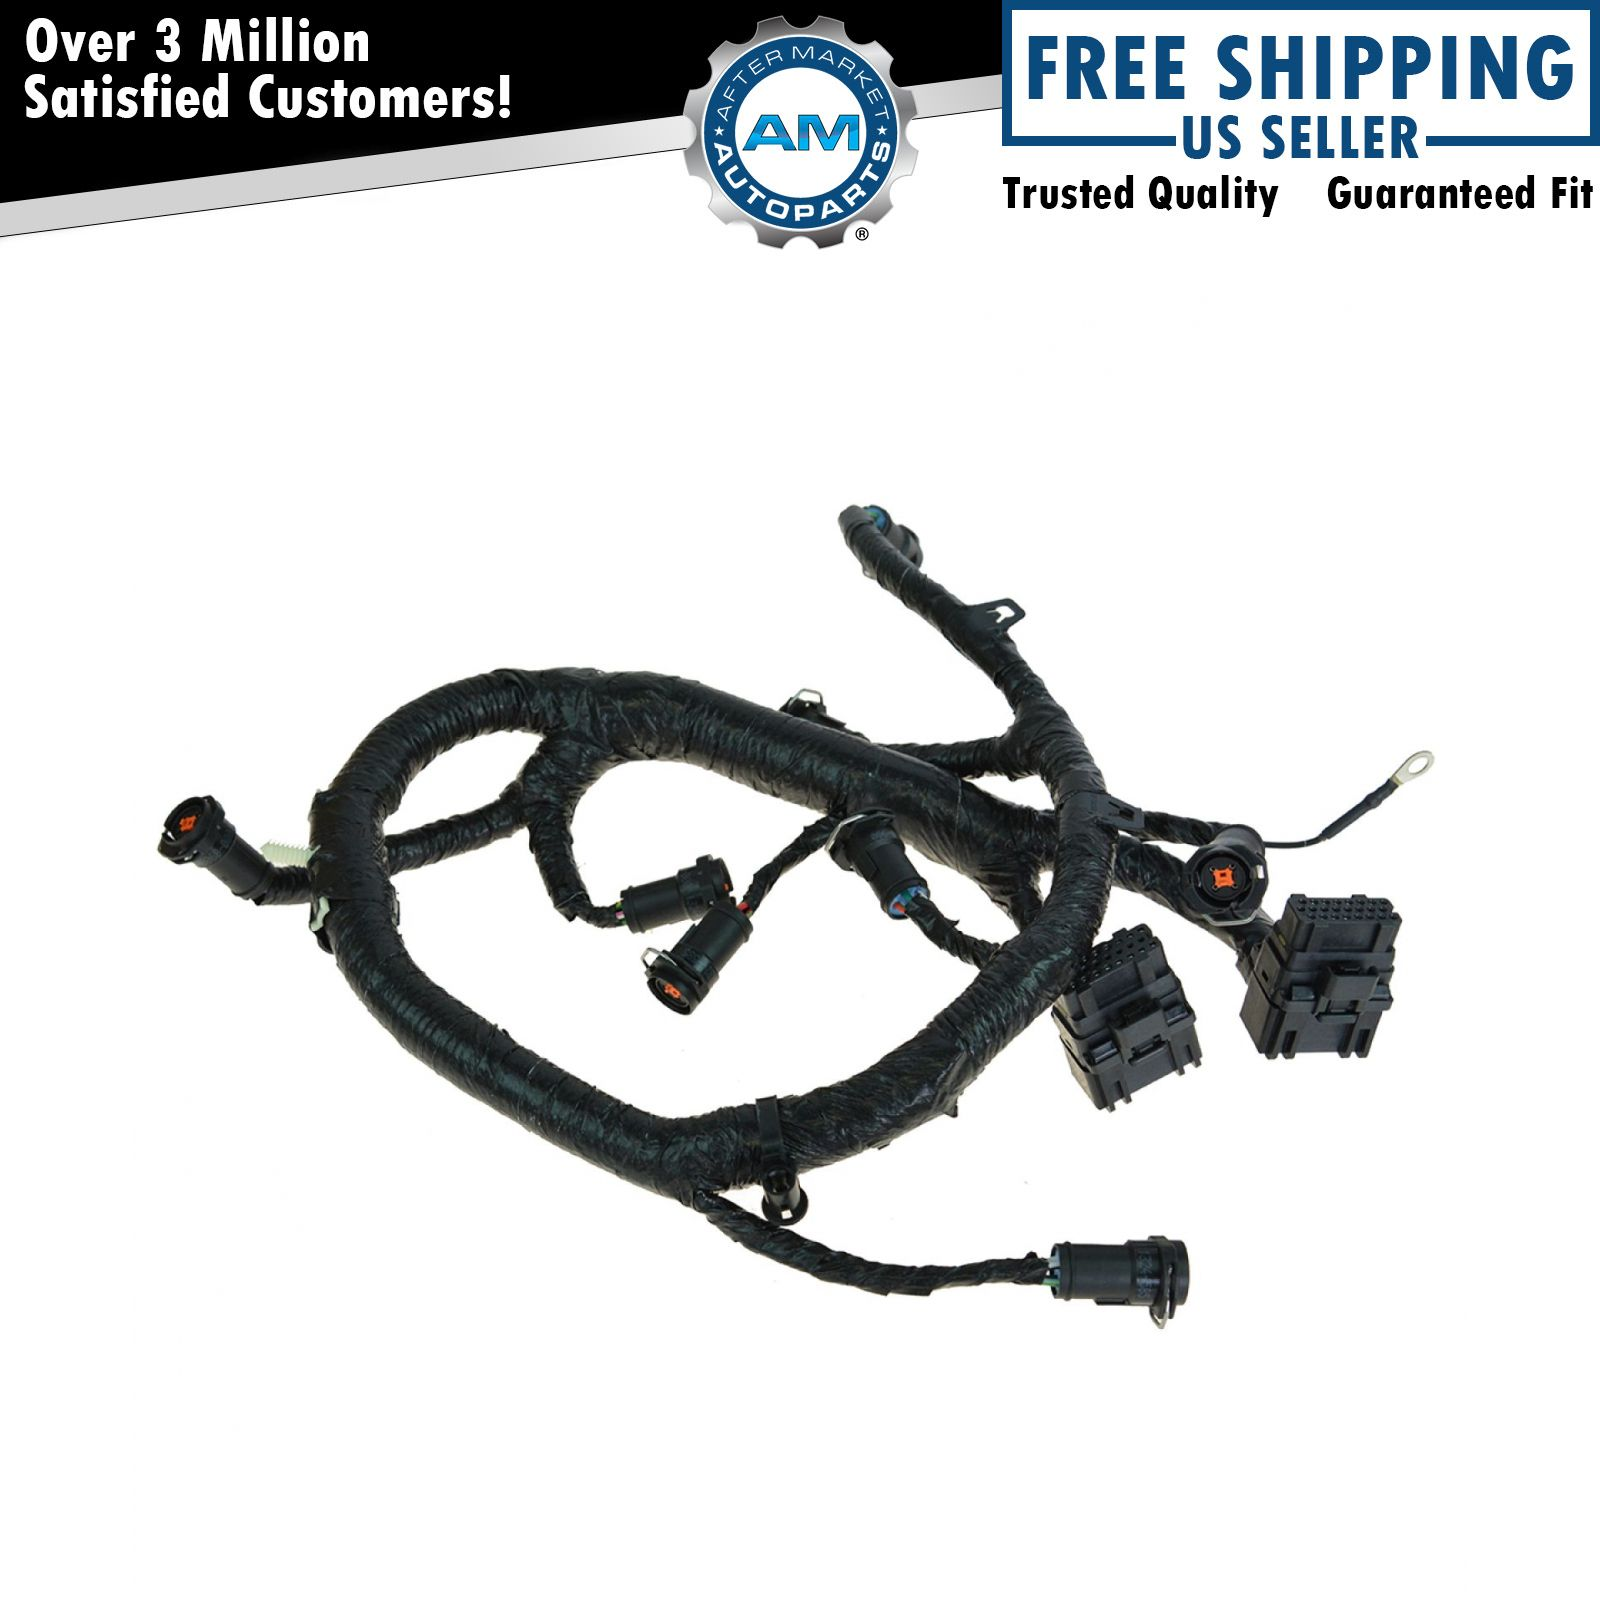 Ford Fuel Injector Wiring | Wiring Liry Ford Fuel Injection Wiring Harness on